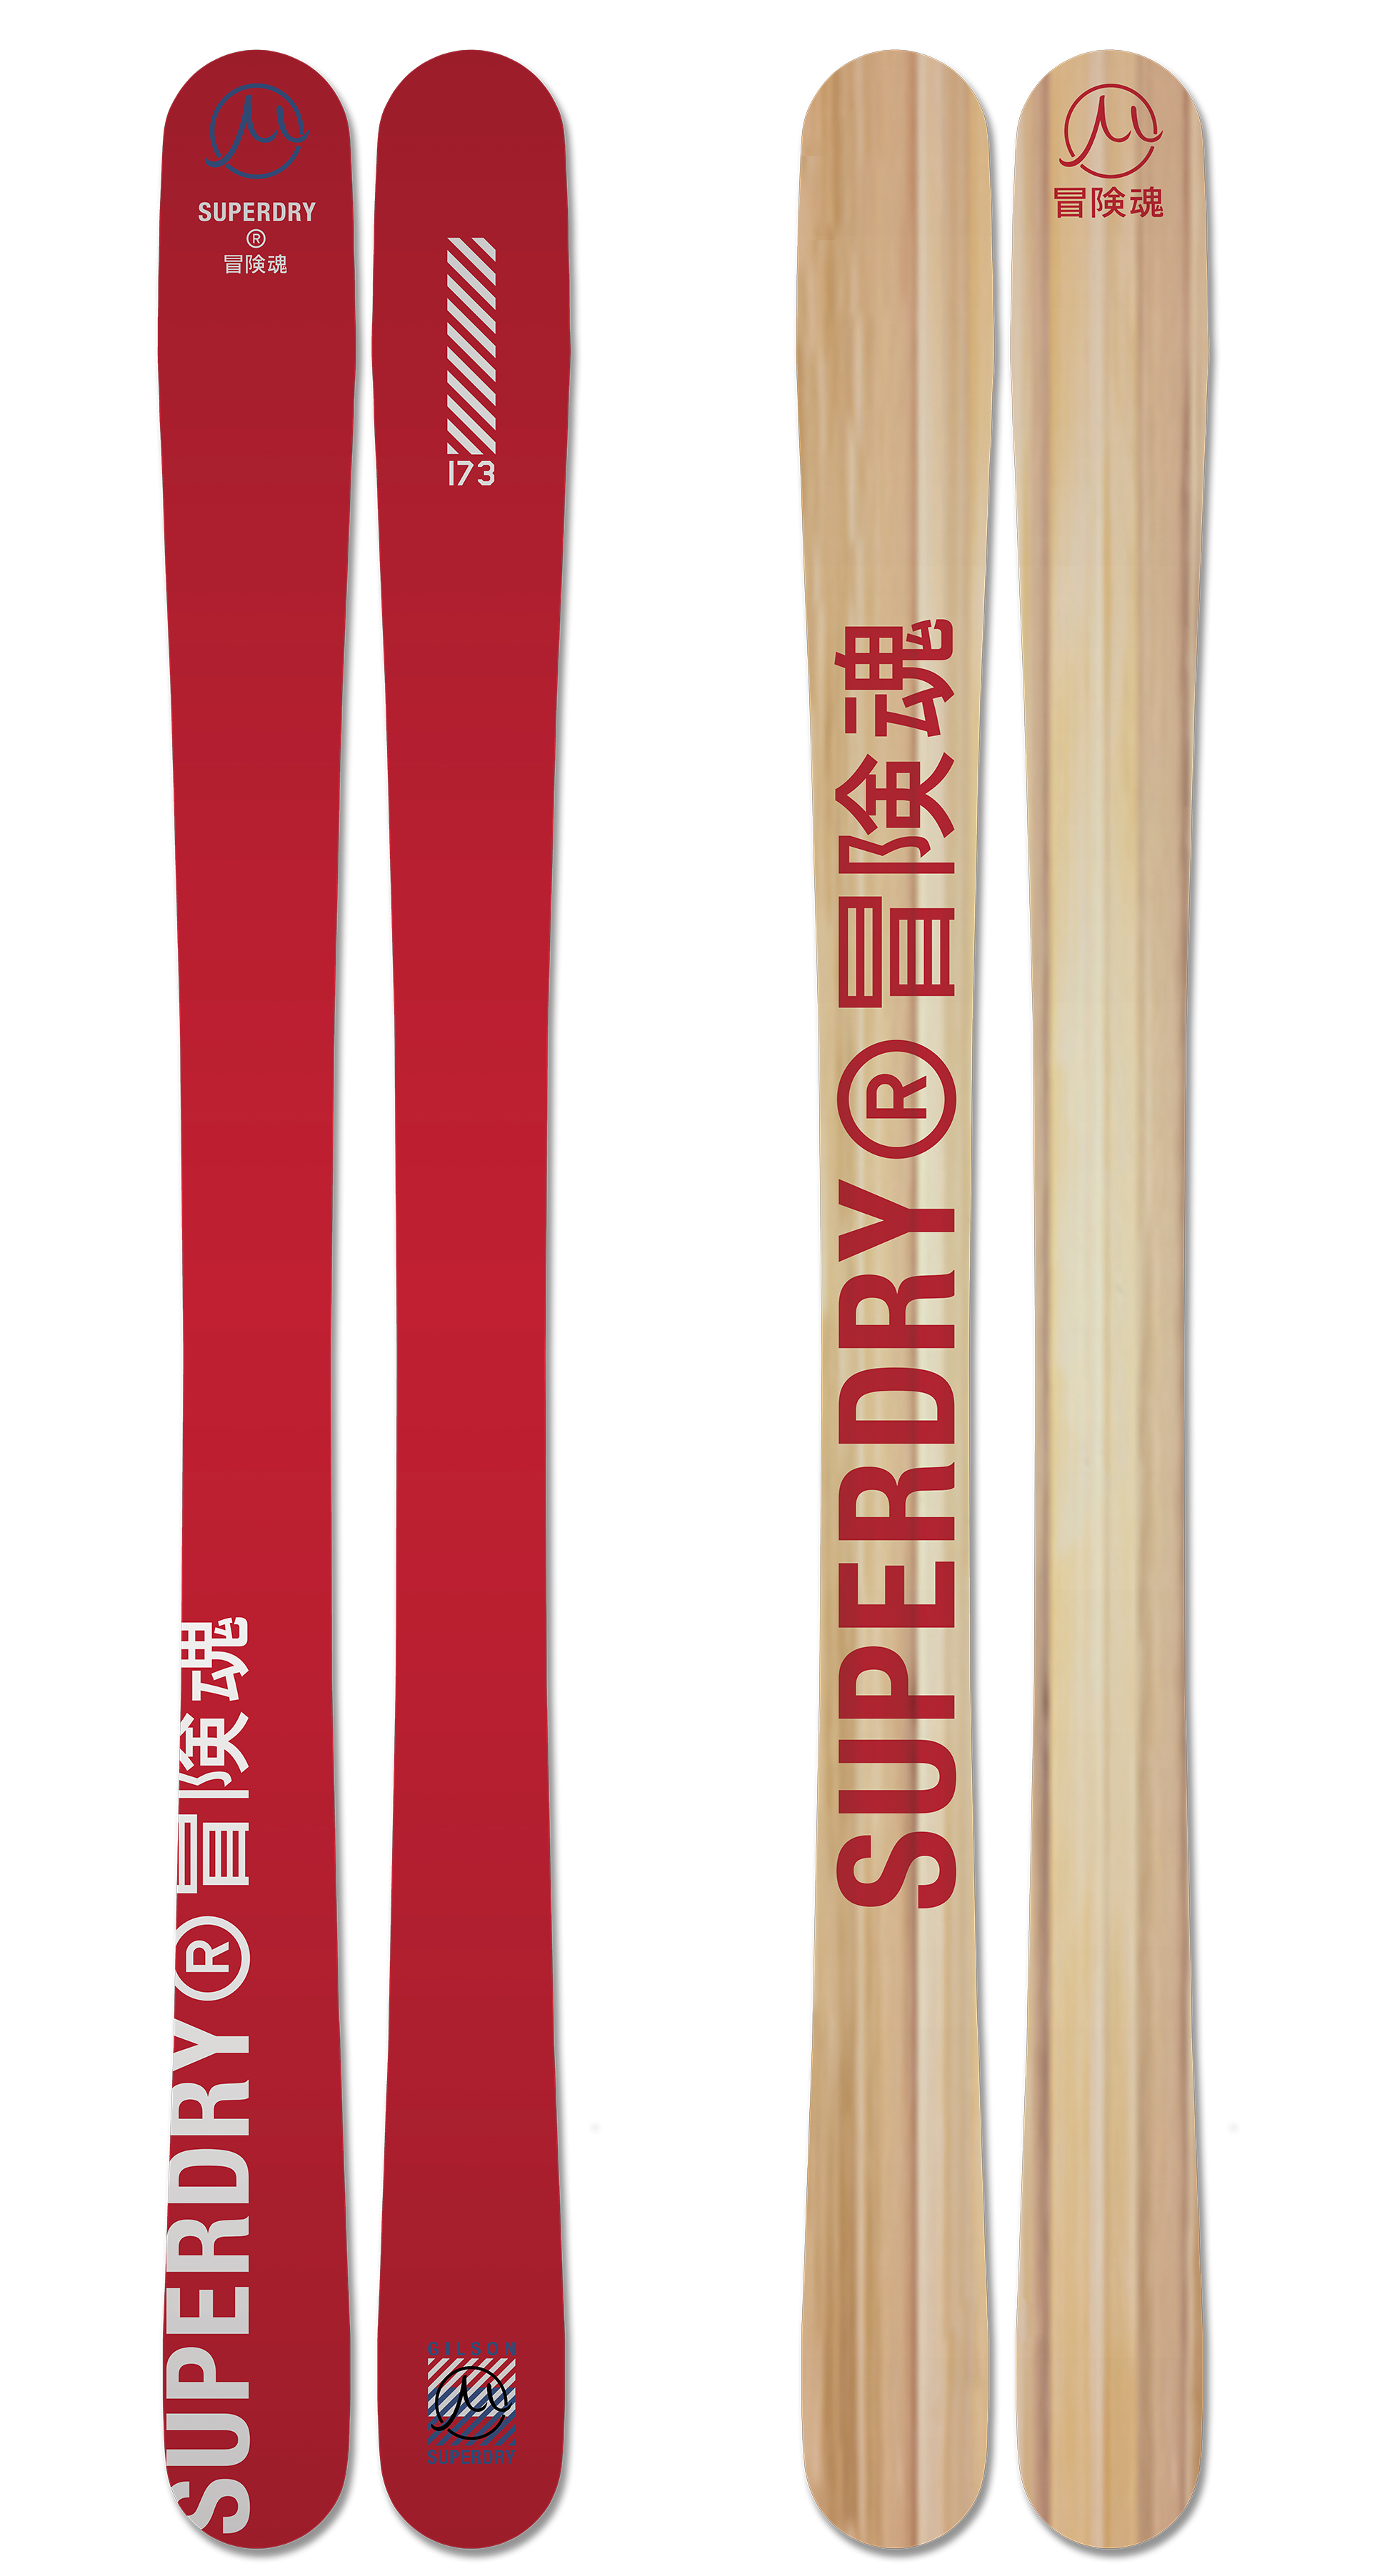 Superdry gravity red wood skis large